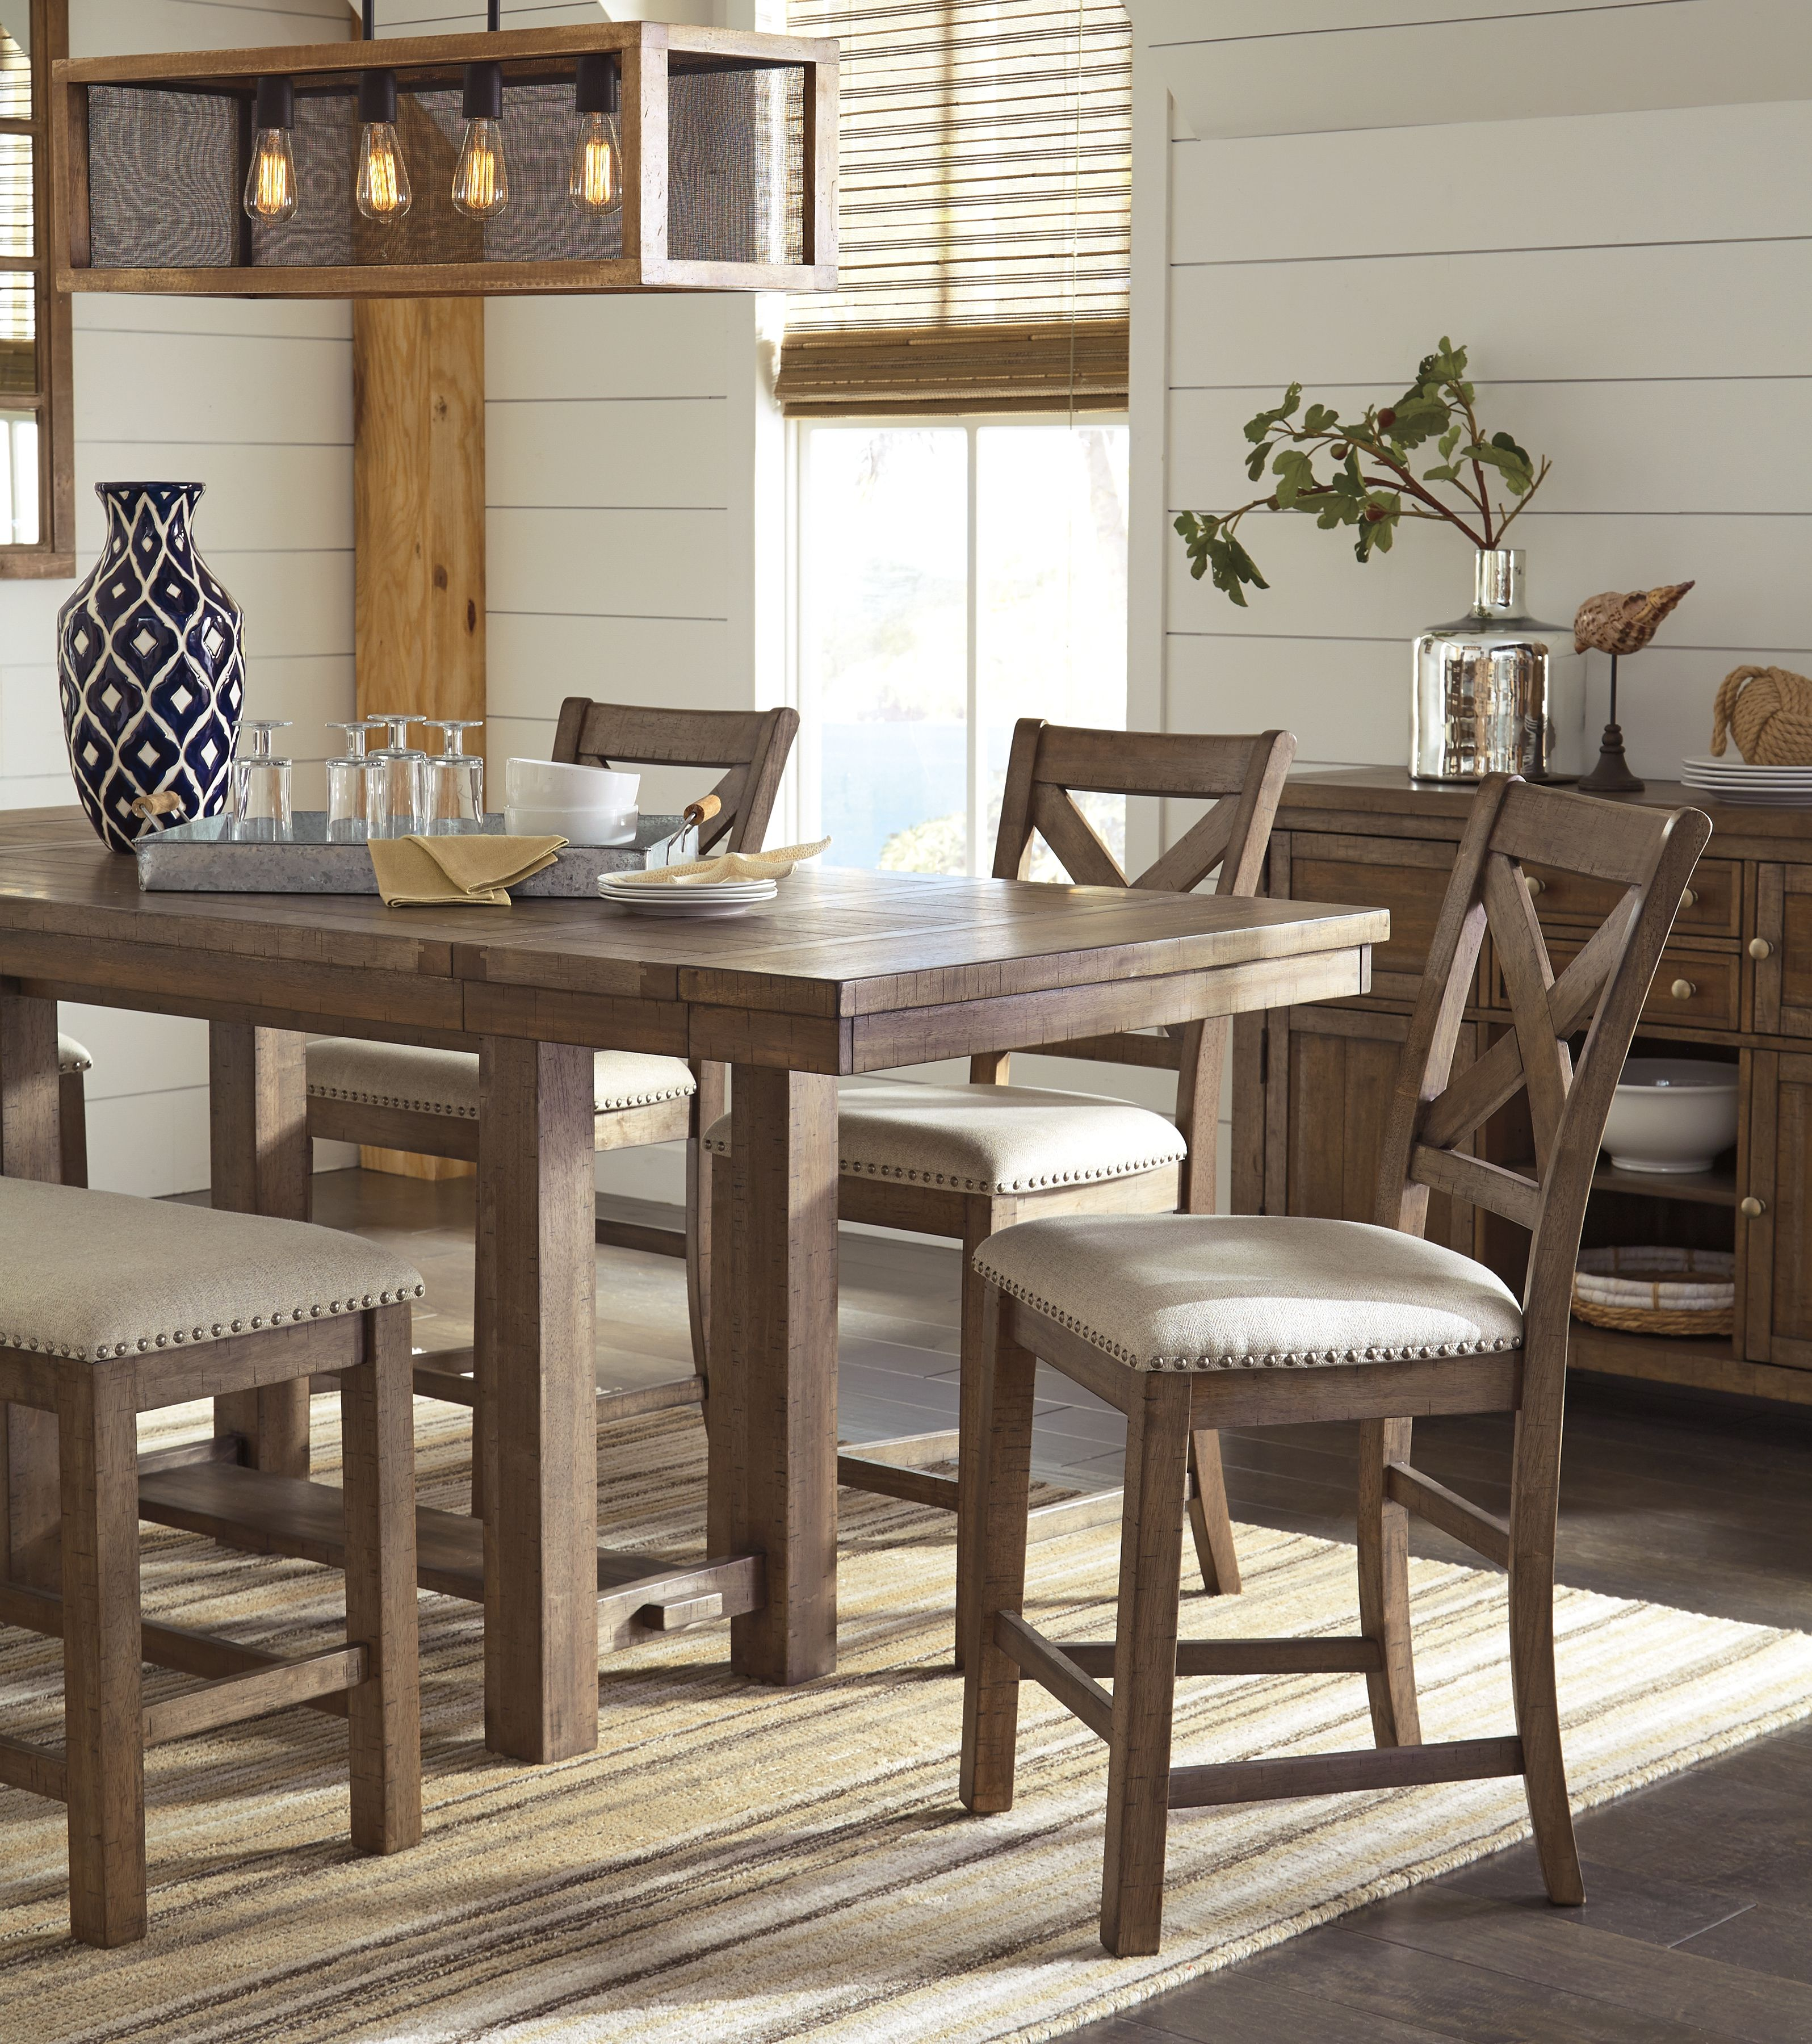 Moriville Counter Height Bar Stool Set Of 2 Beige Small Dining Room Set Dining Room Small Side Chairs Dining